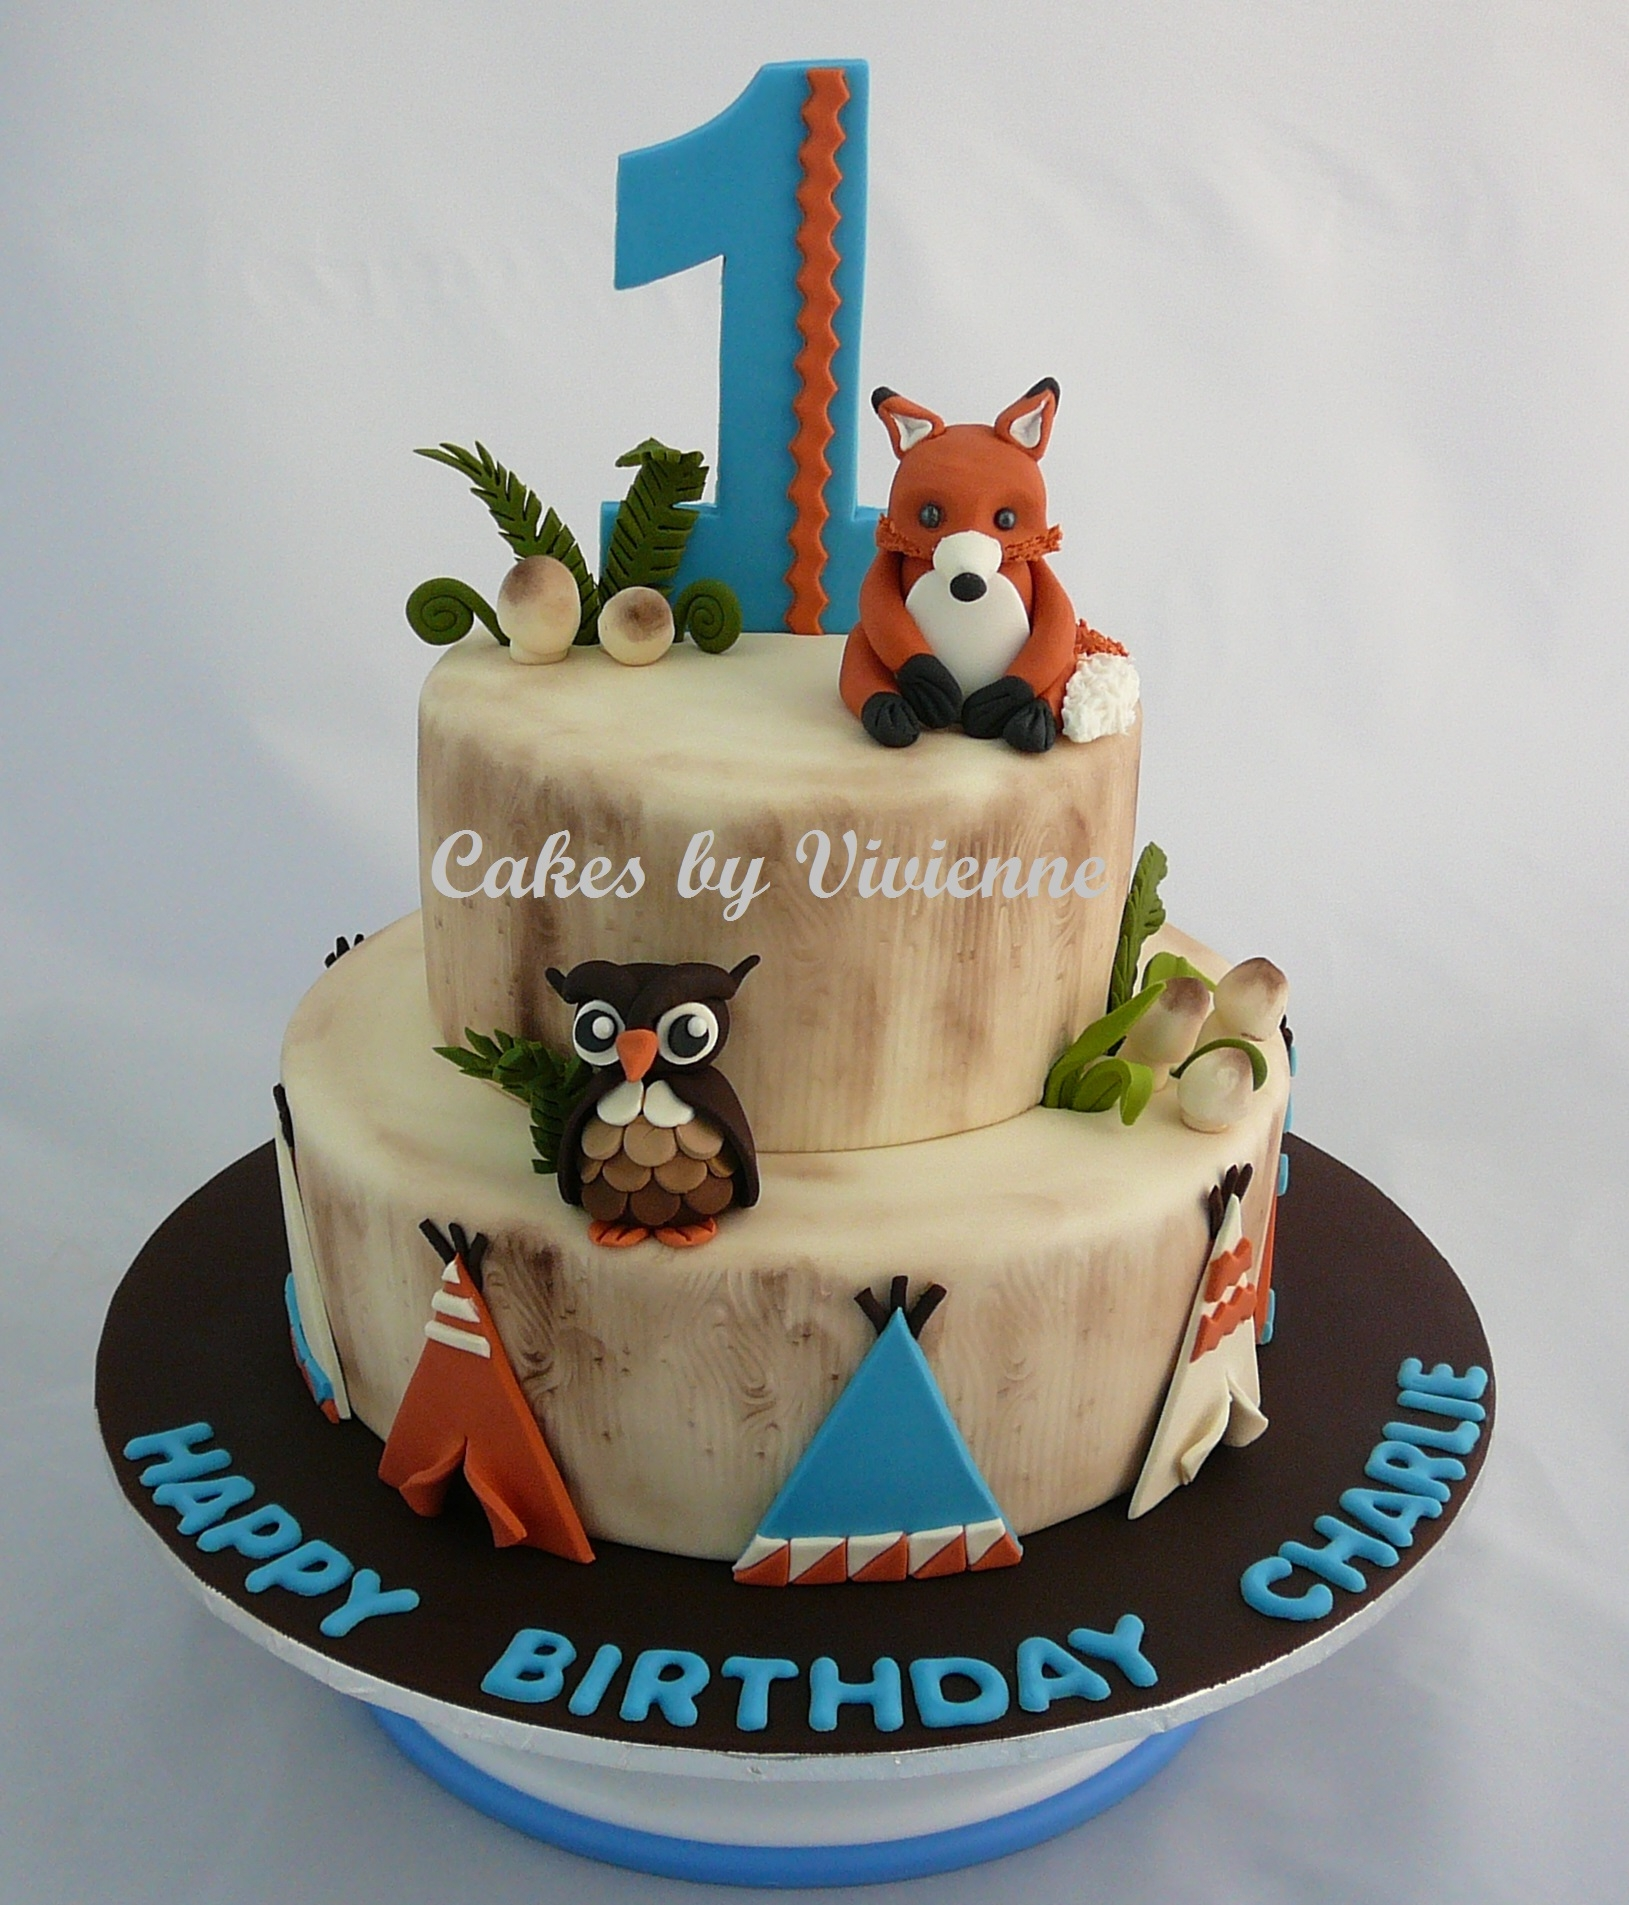 Cake Decoration Woodland Animals : Woodland Animals Birthday Cake - CakeCentral.com